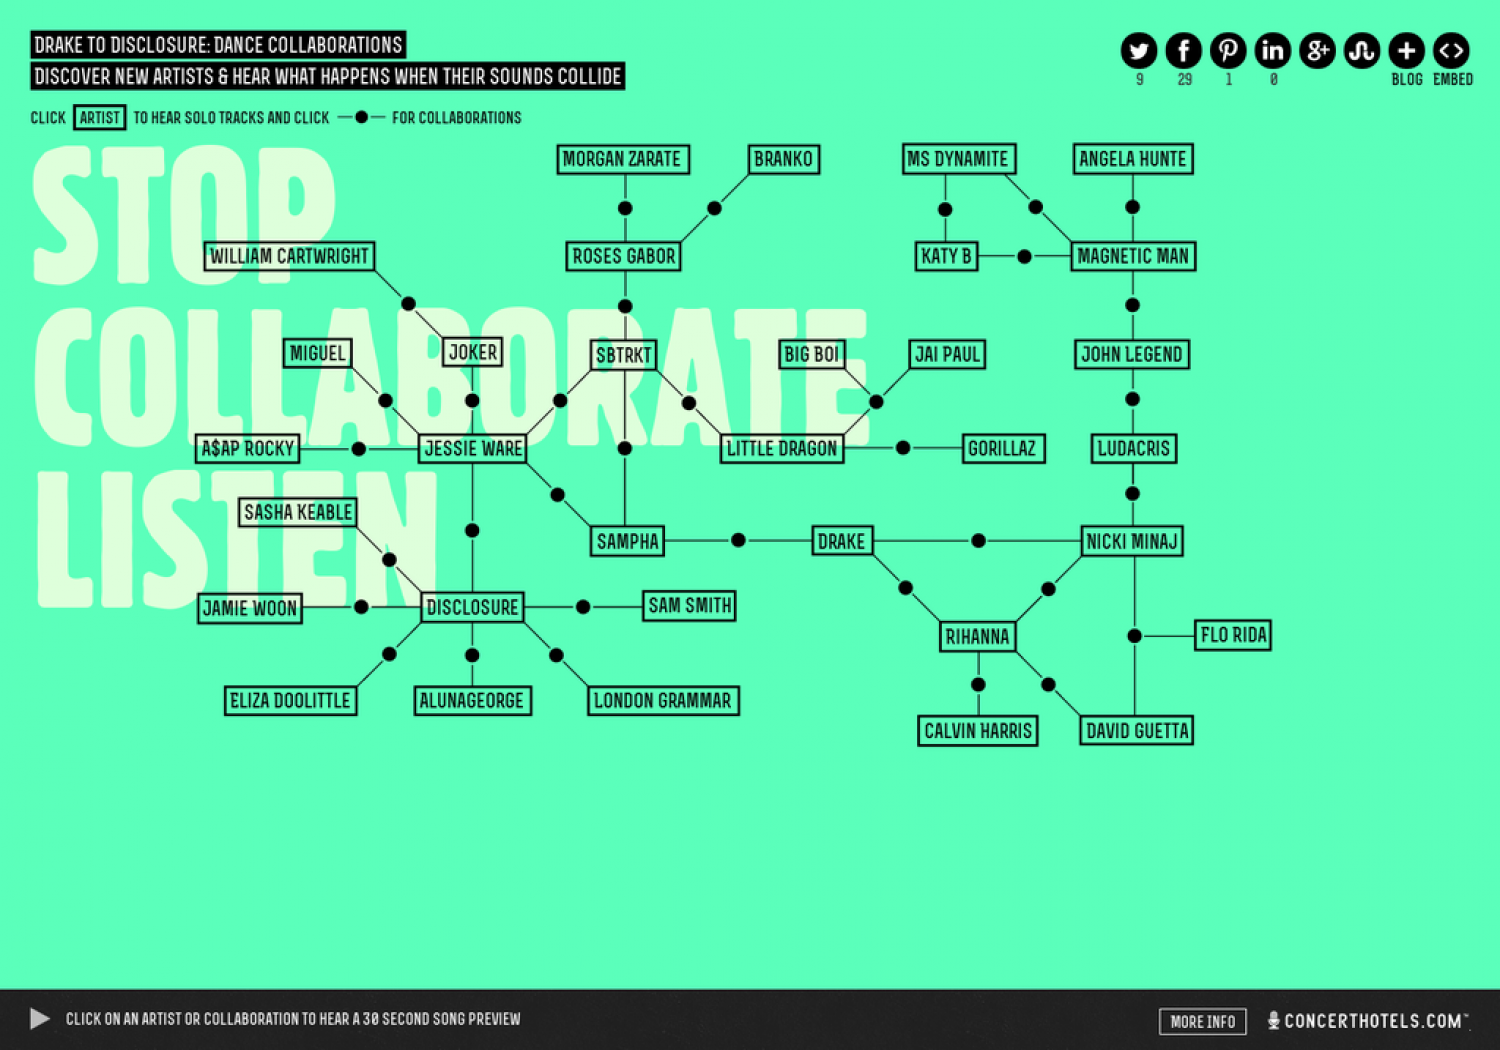 Drake to Disclosure: Dance Collaborations Infographic